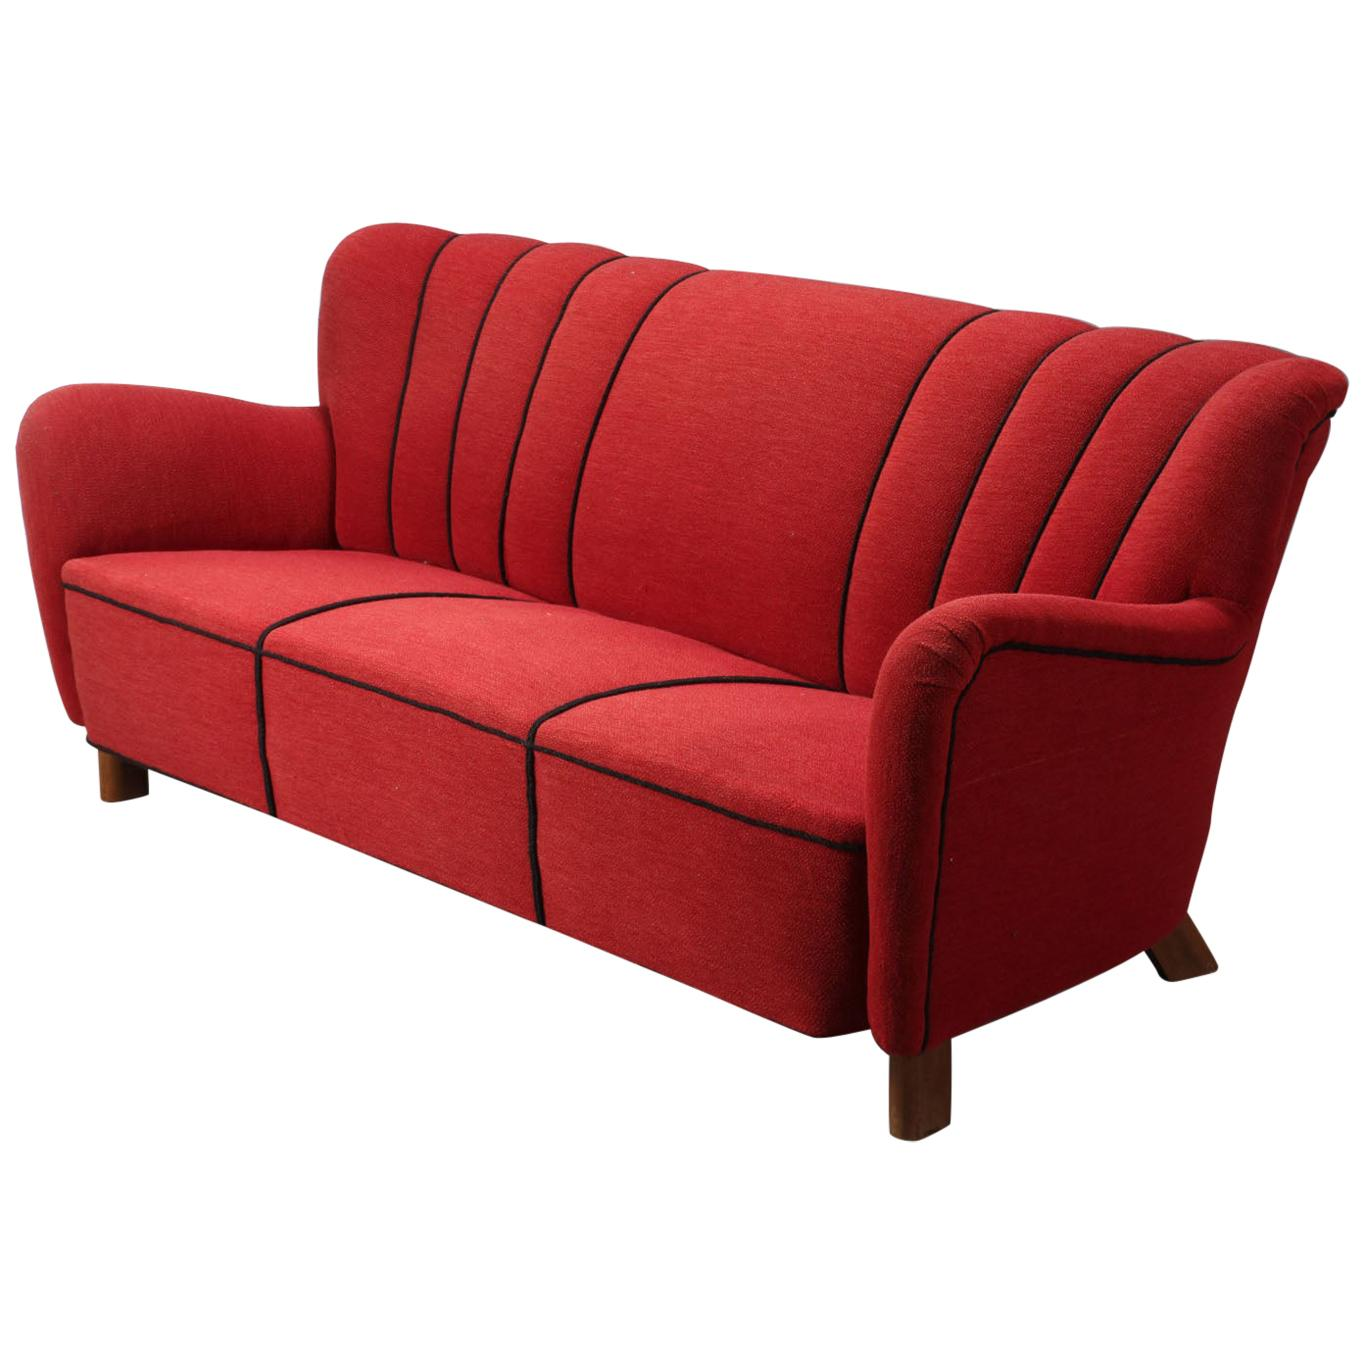 Fritz Hansen Three-Seat Sofa Model 1669a Red 3-Seat Couch 1940s Midcentury